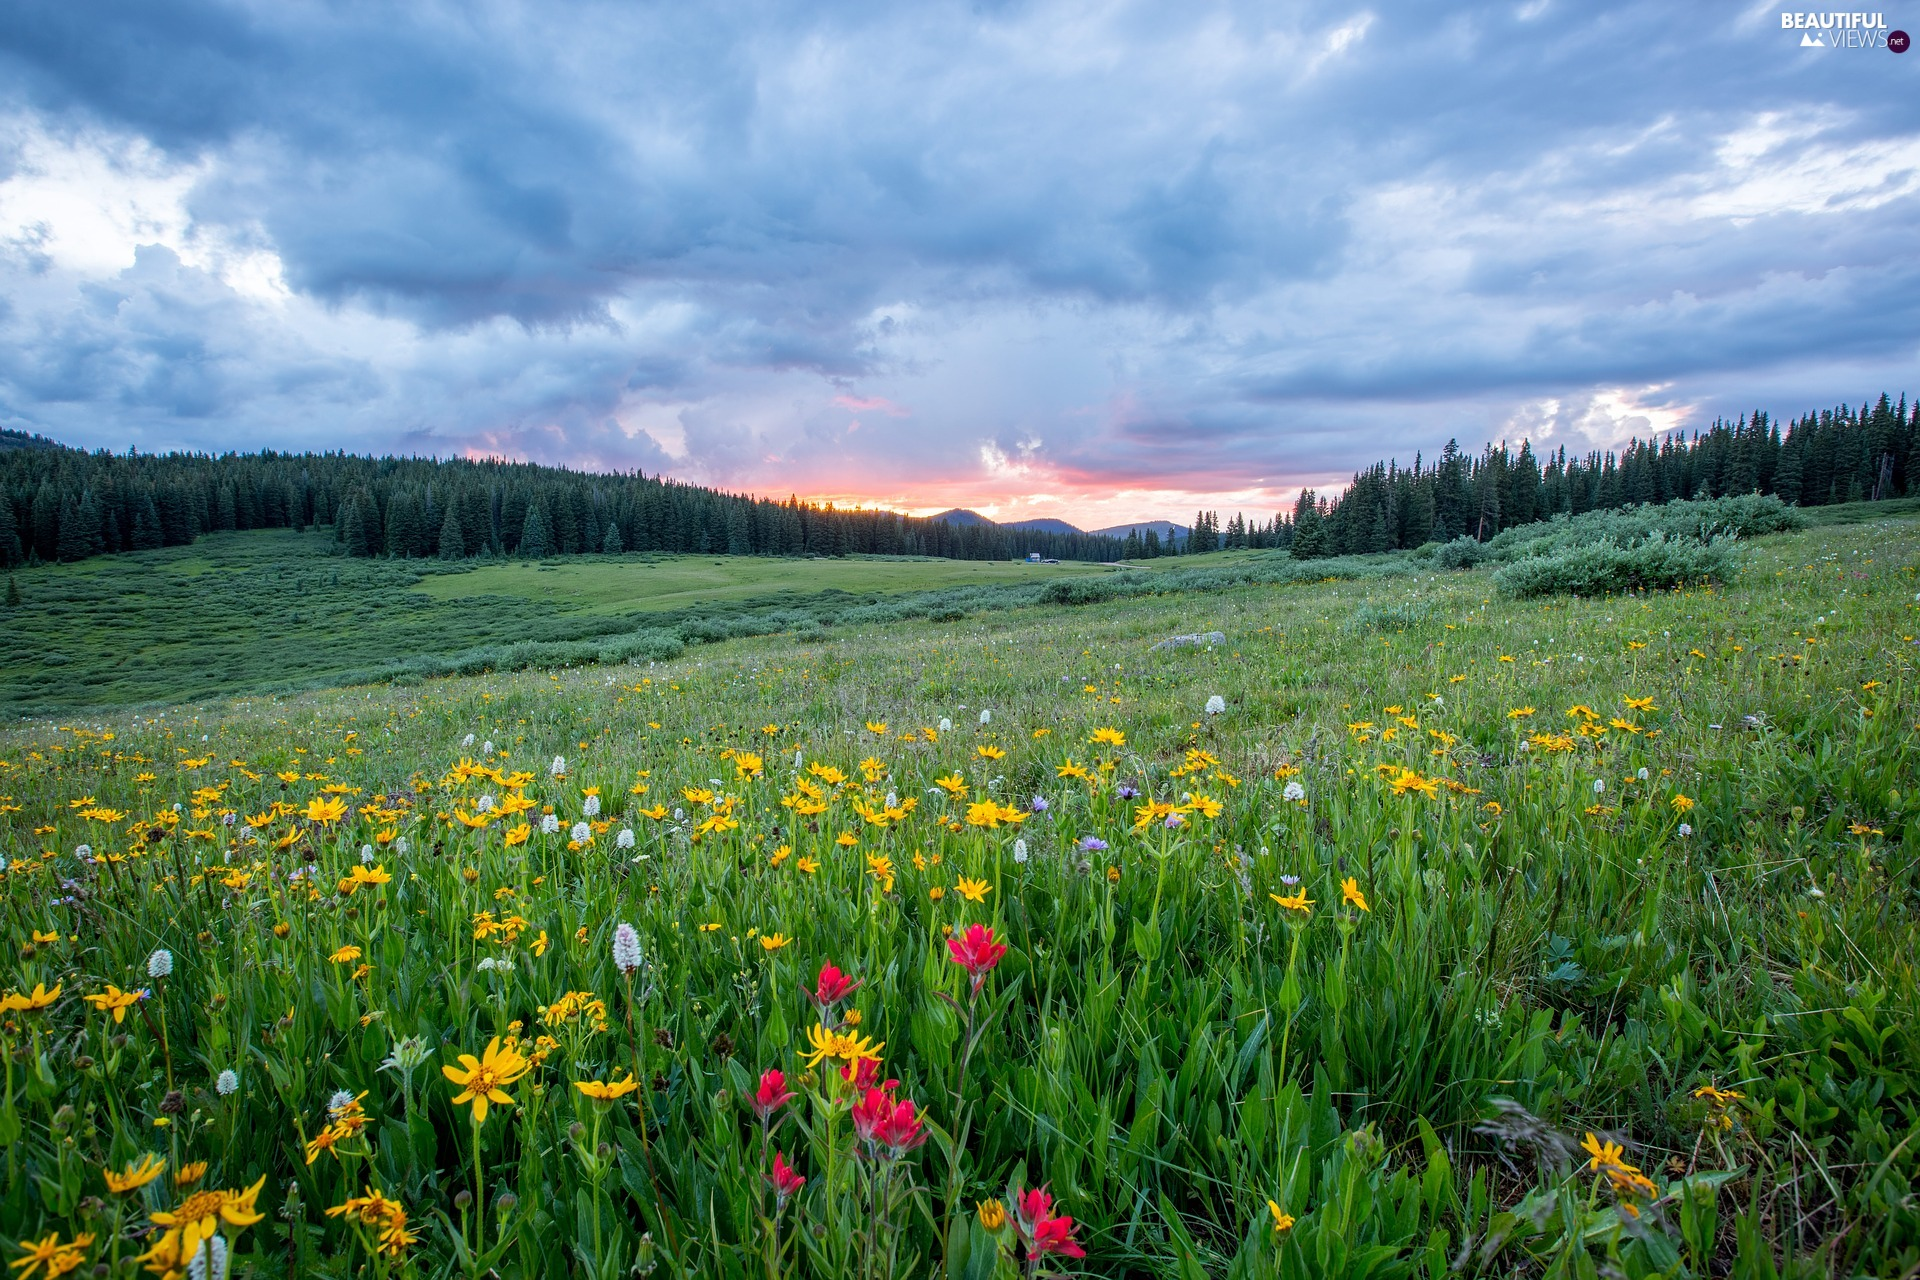 trees, Meadow, clouds, Sunrise, viewes, Flowers